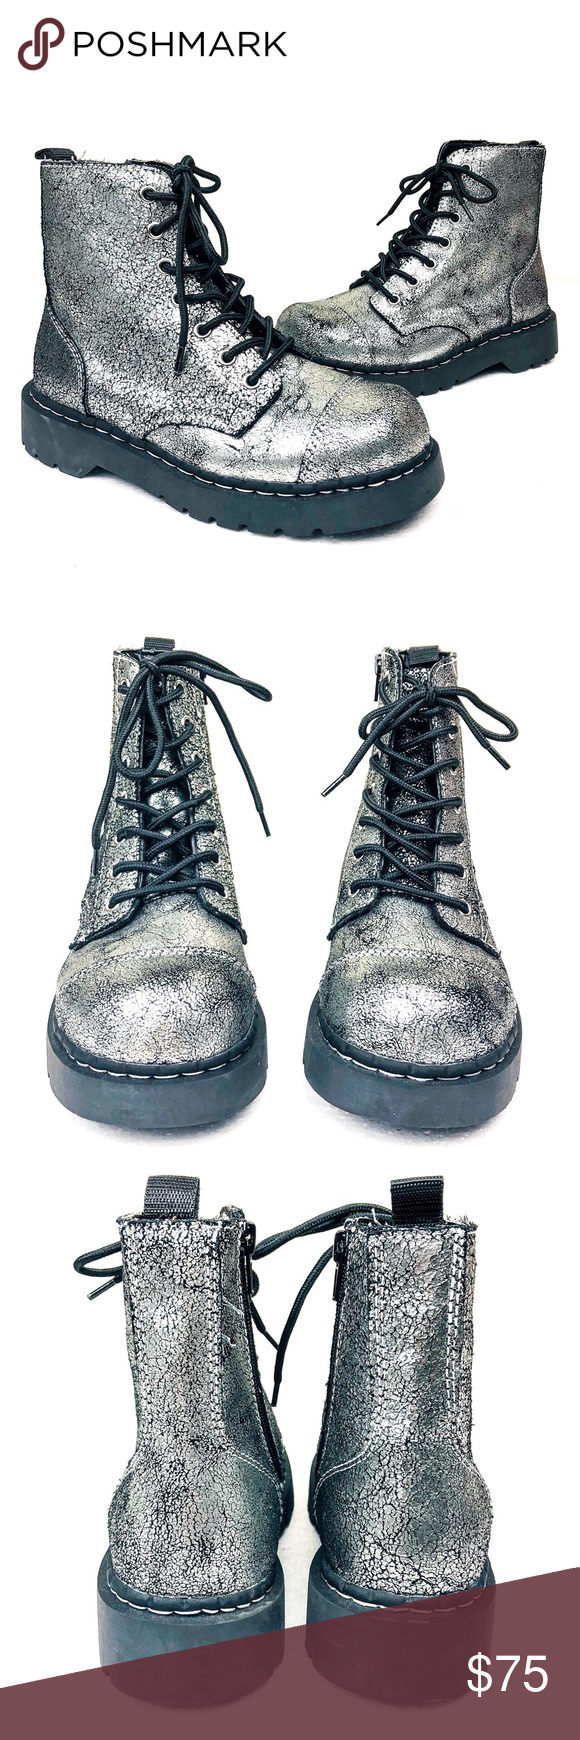 Anarchic Tuk 7 Eye Cracked Silver Leather Boot 8 Boots Leather Boots Fashion